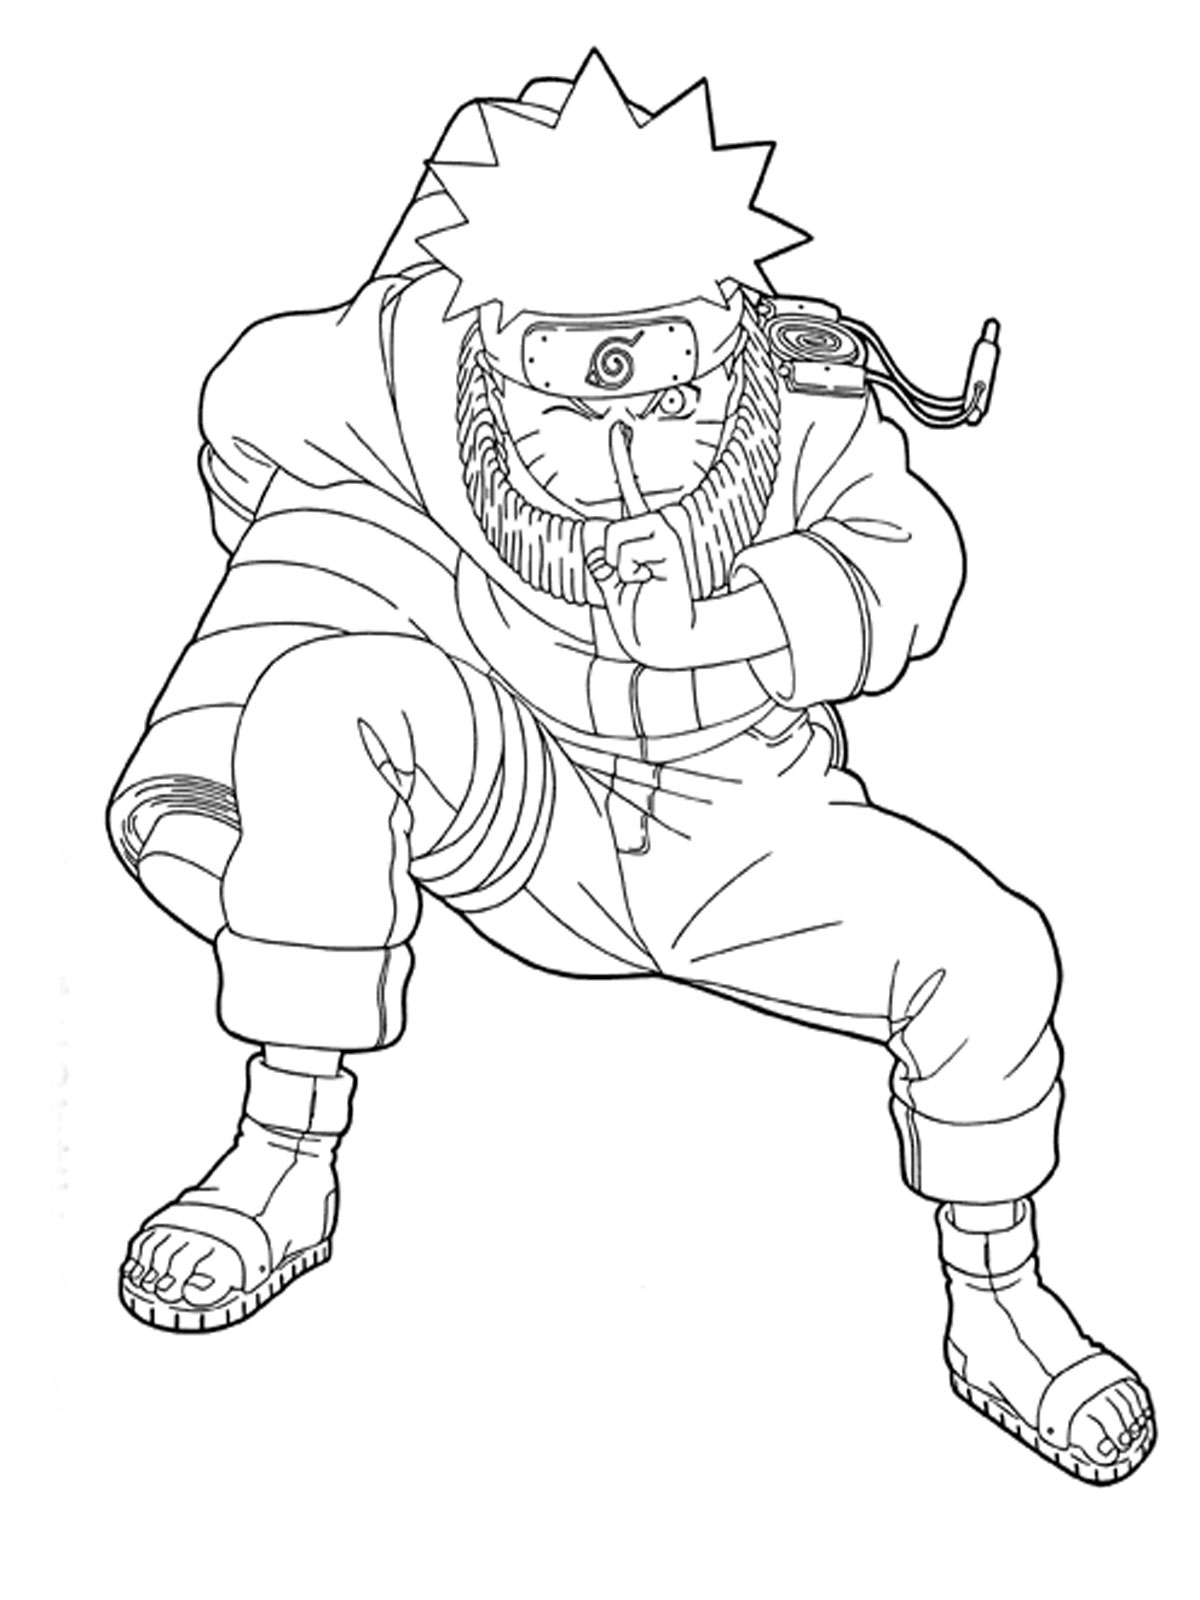 naruto coloring pages naruto shippuden coloring pages to download and print for free naruto pages coloring